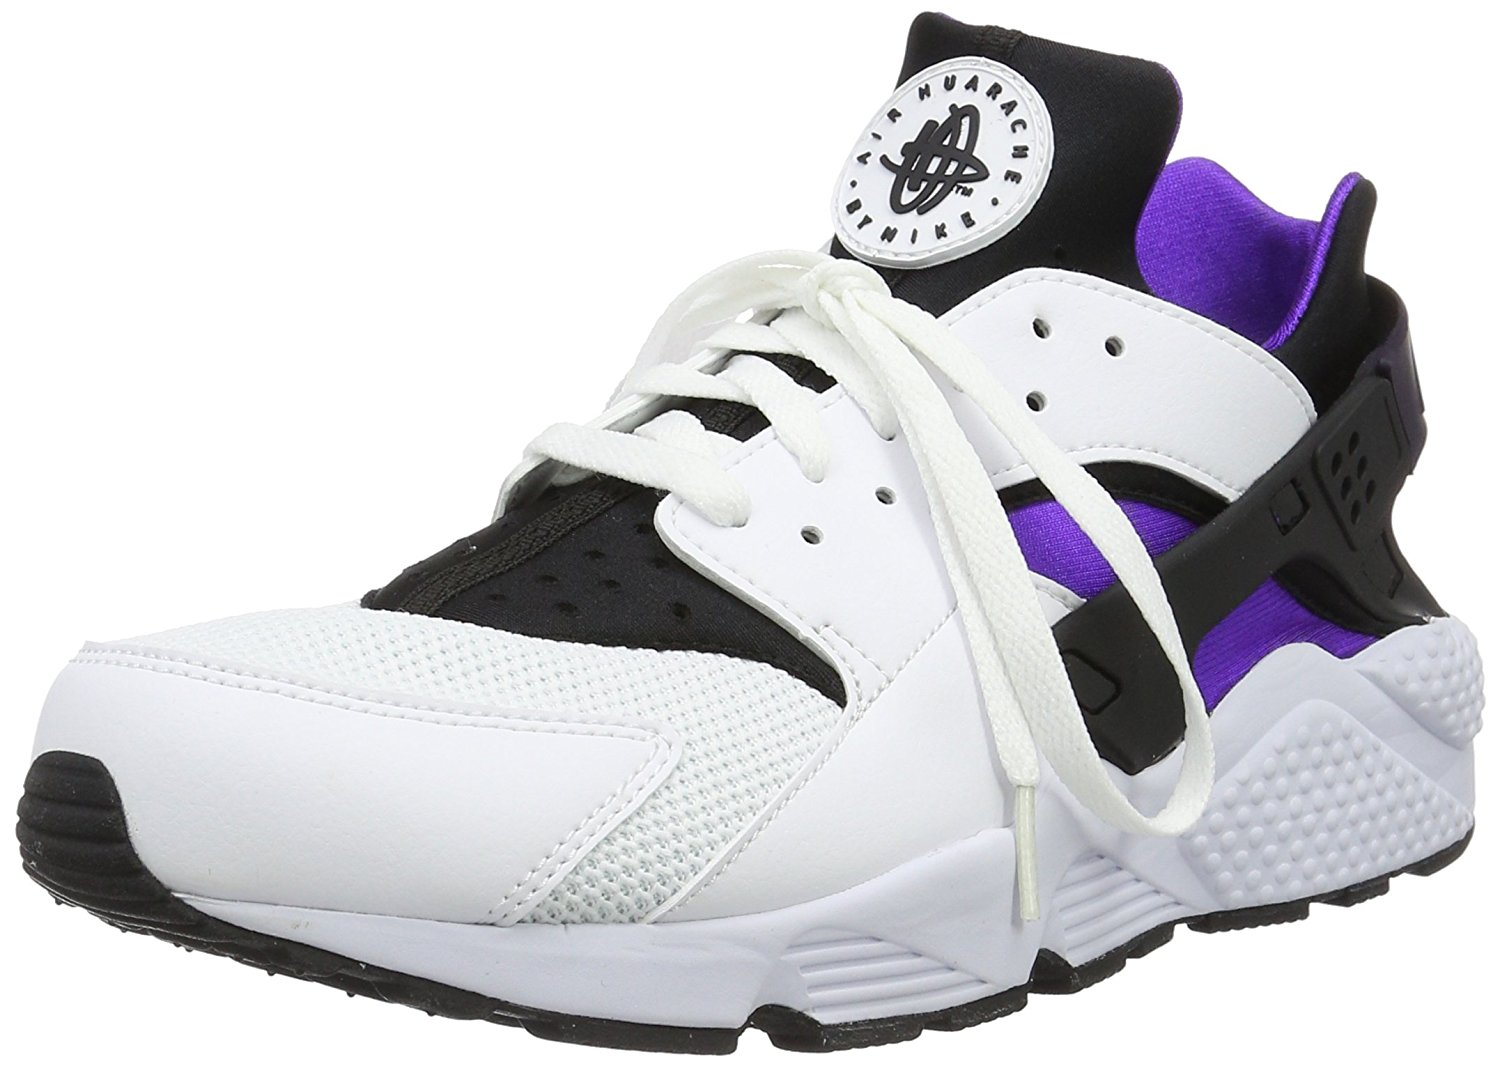 f805a0f2e2759 Get Quotations · Nike Men's Air Huarache Exclusive Flint Spin Fabric  Trainer Shoes